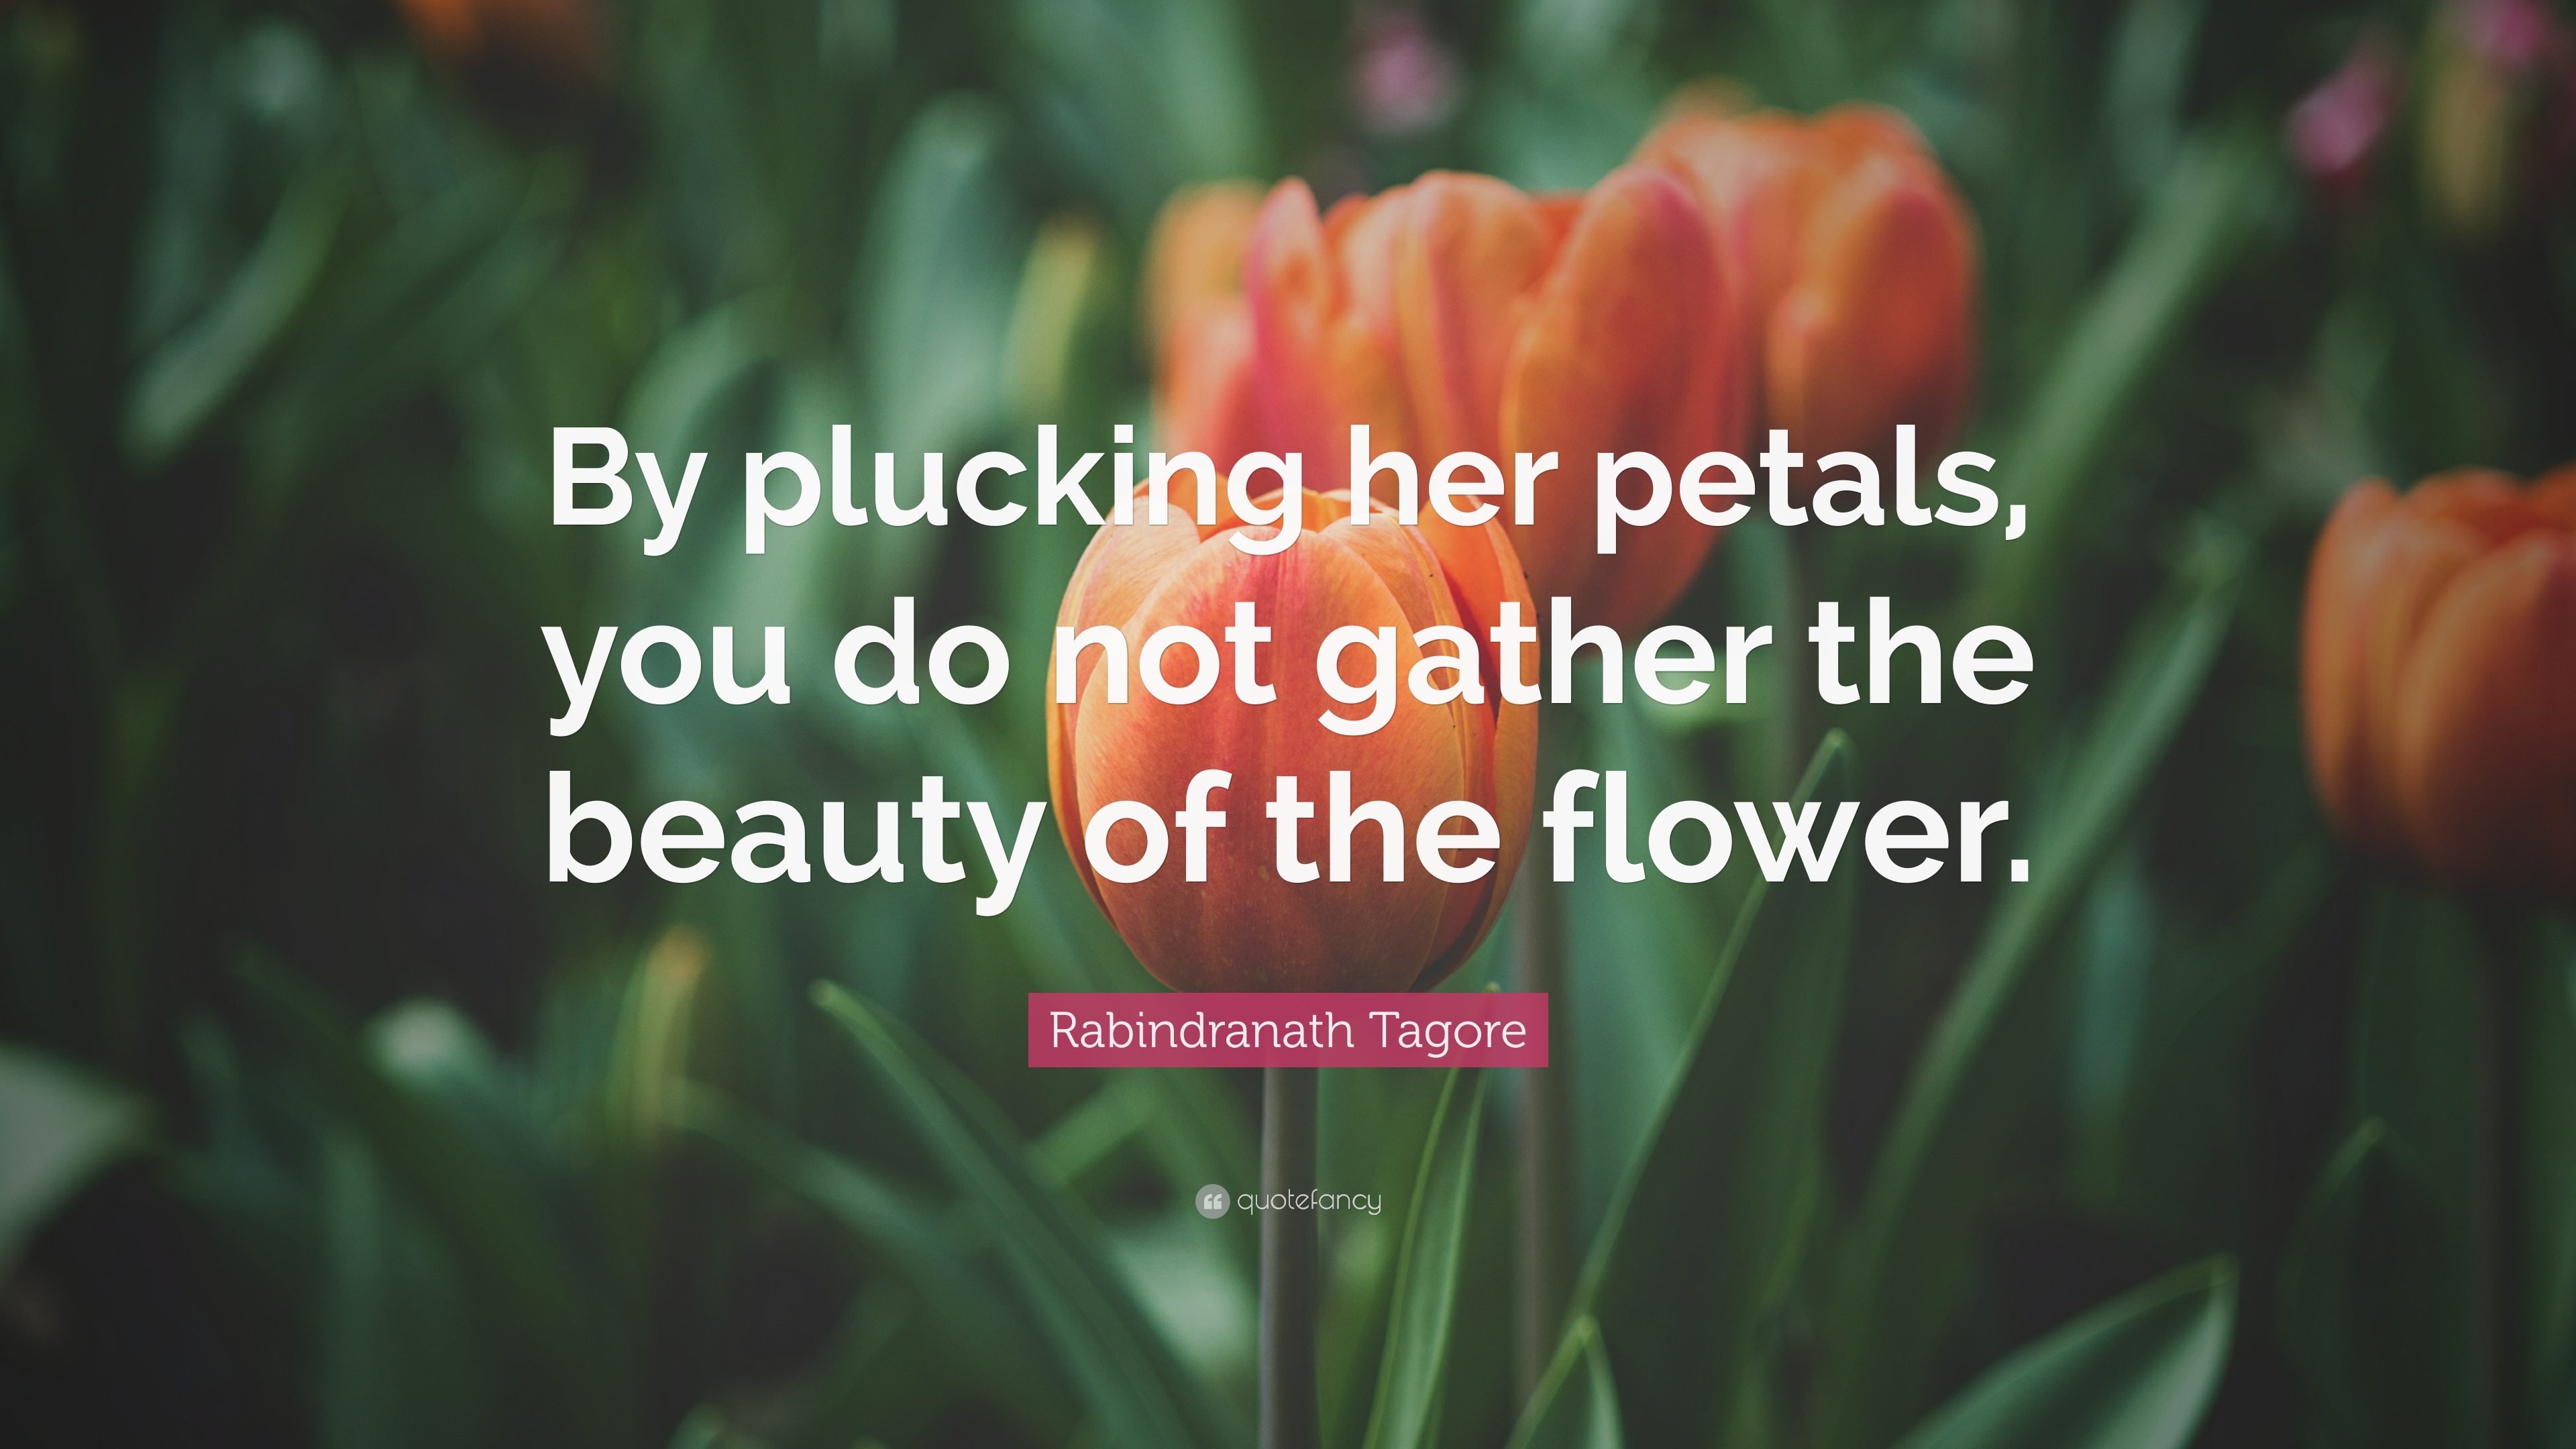 Rabindranath Tagore Quote By Plucking Her Petals You Do Not